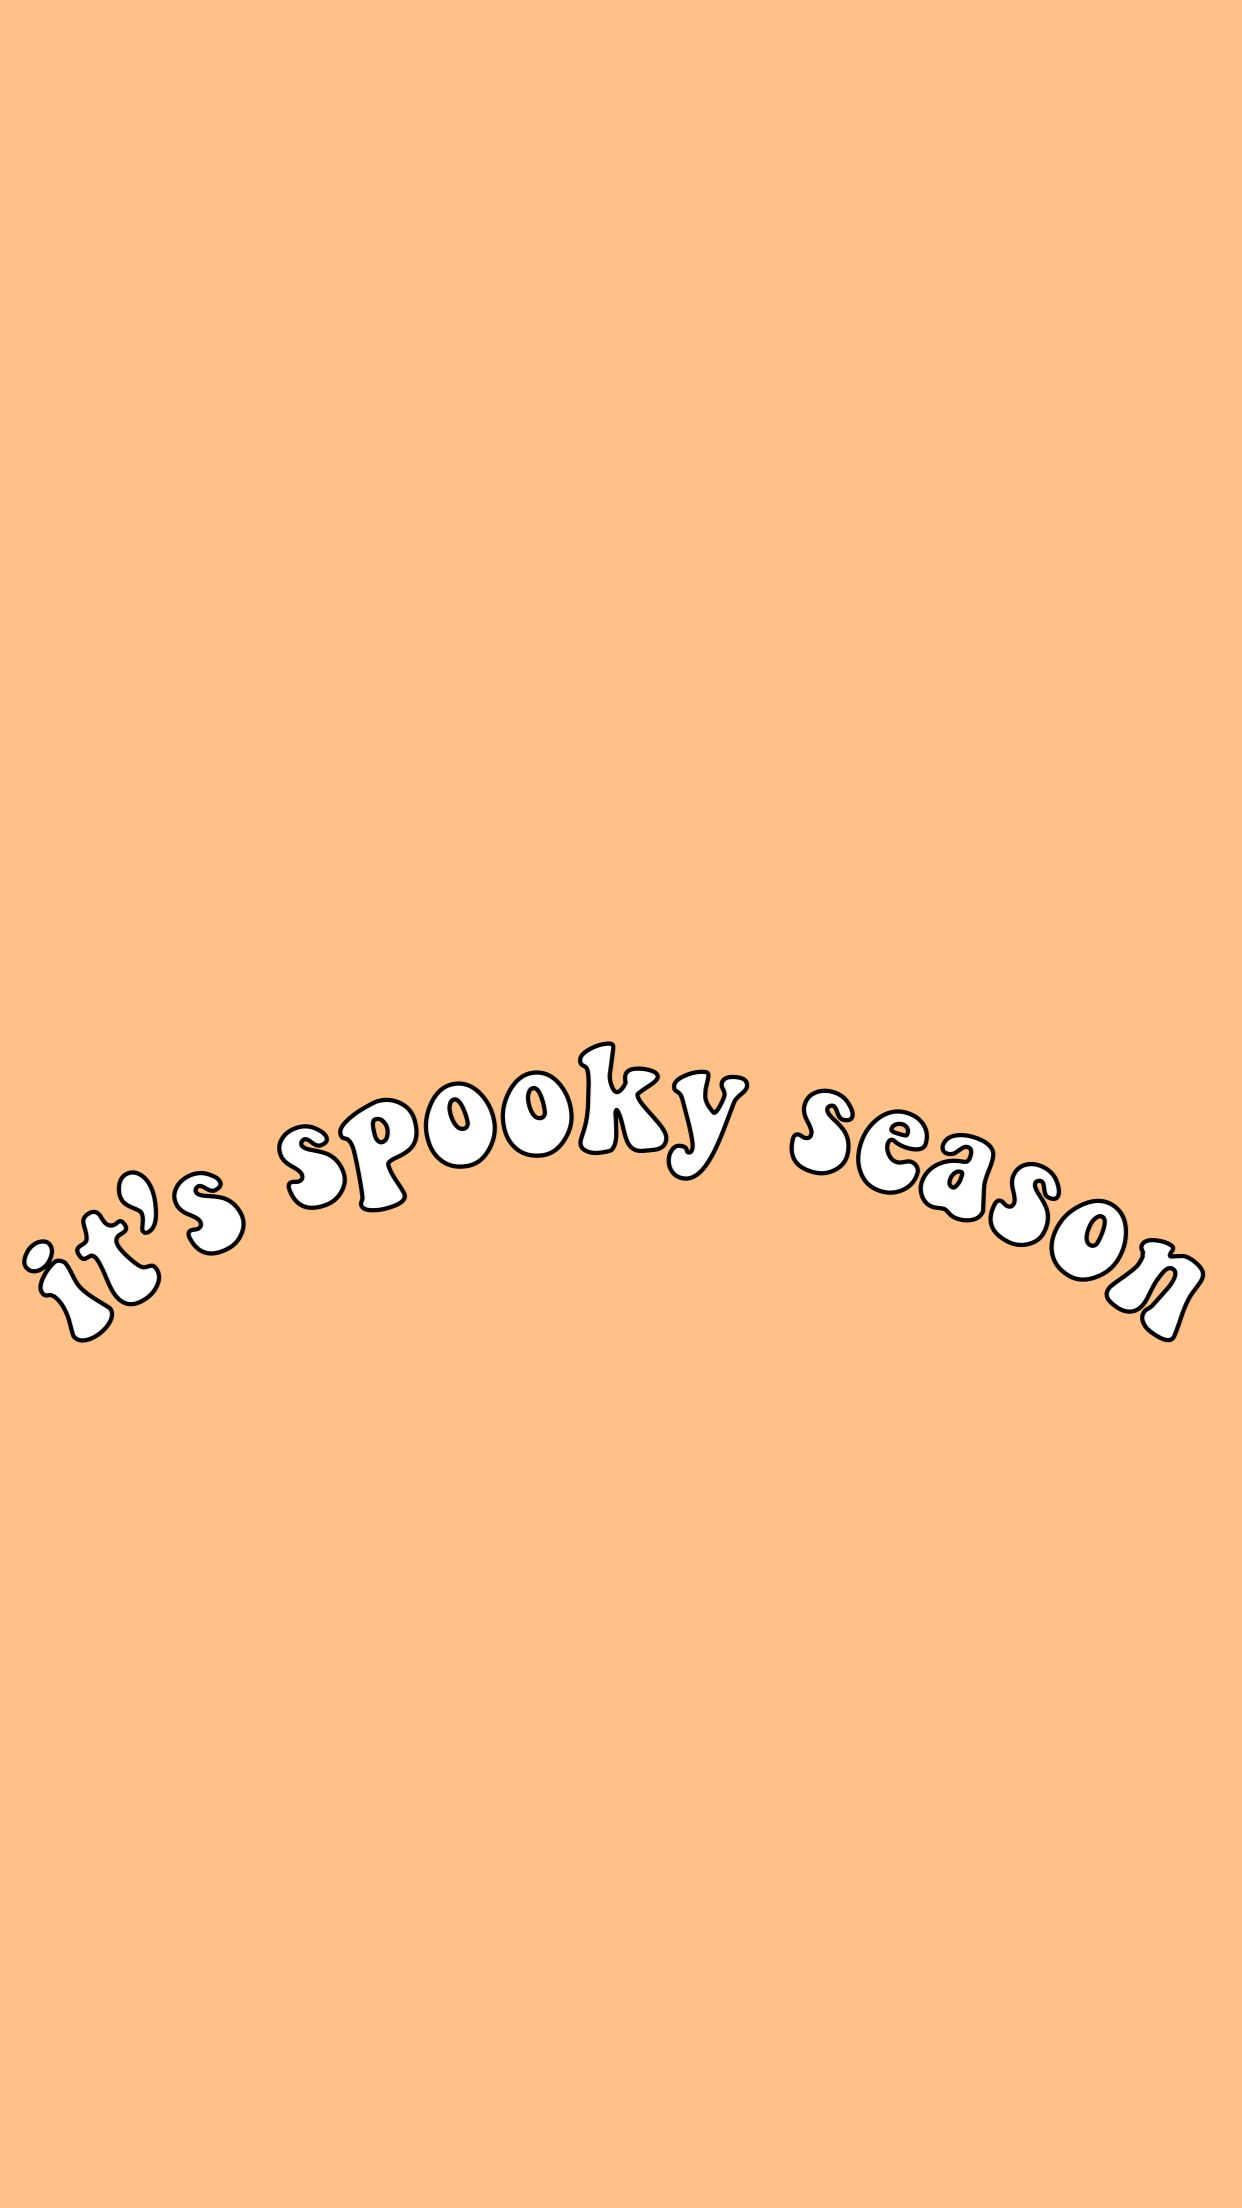 Halloween Quote Words Spooky Season Orange Aesthetic Vsco